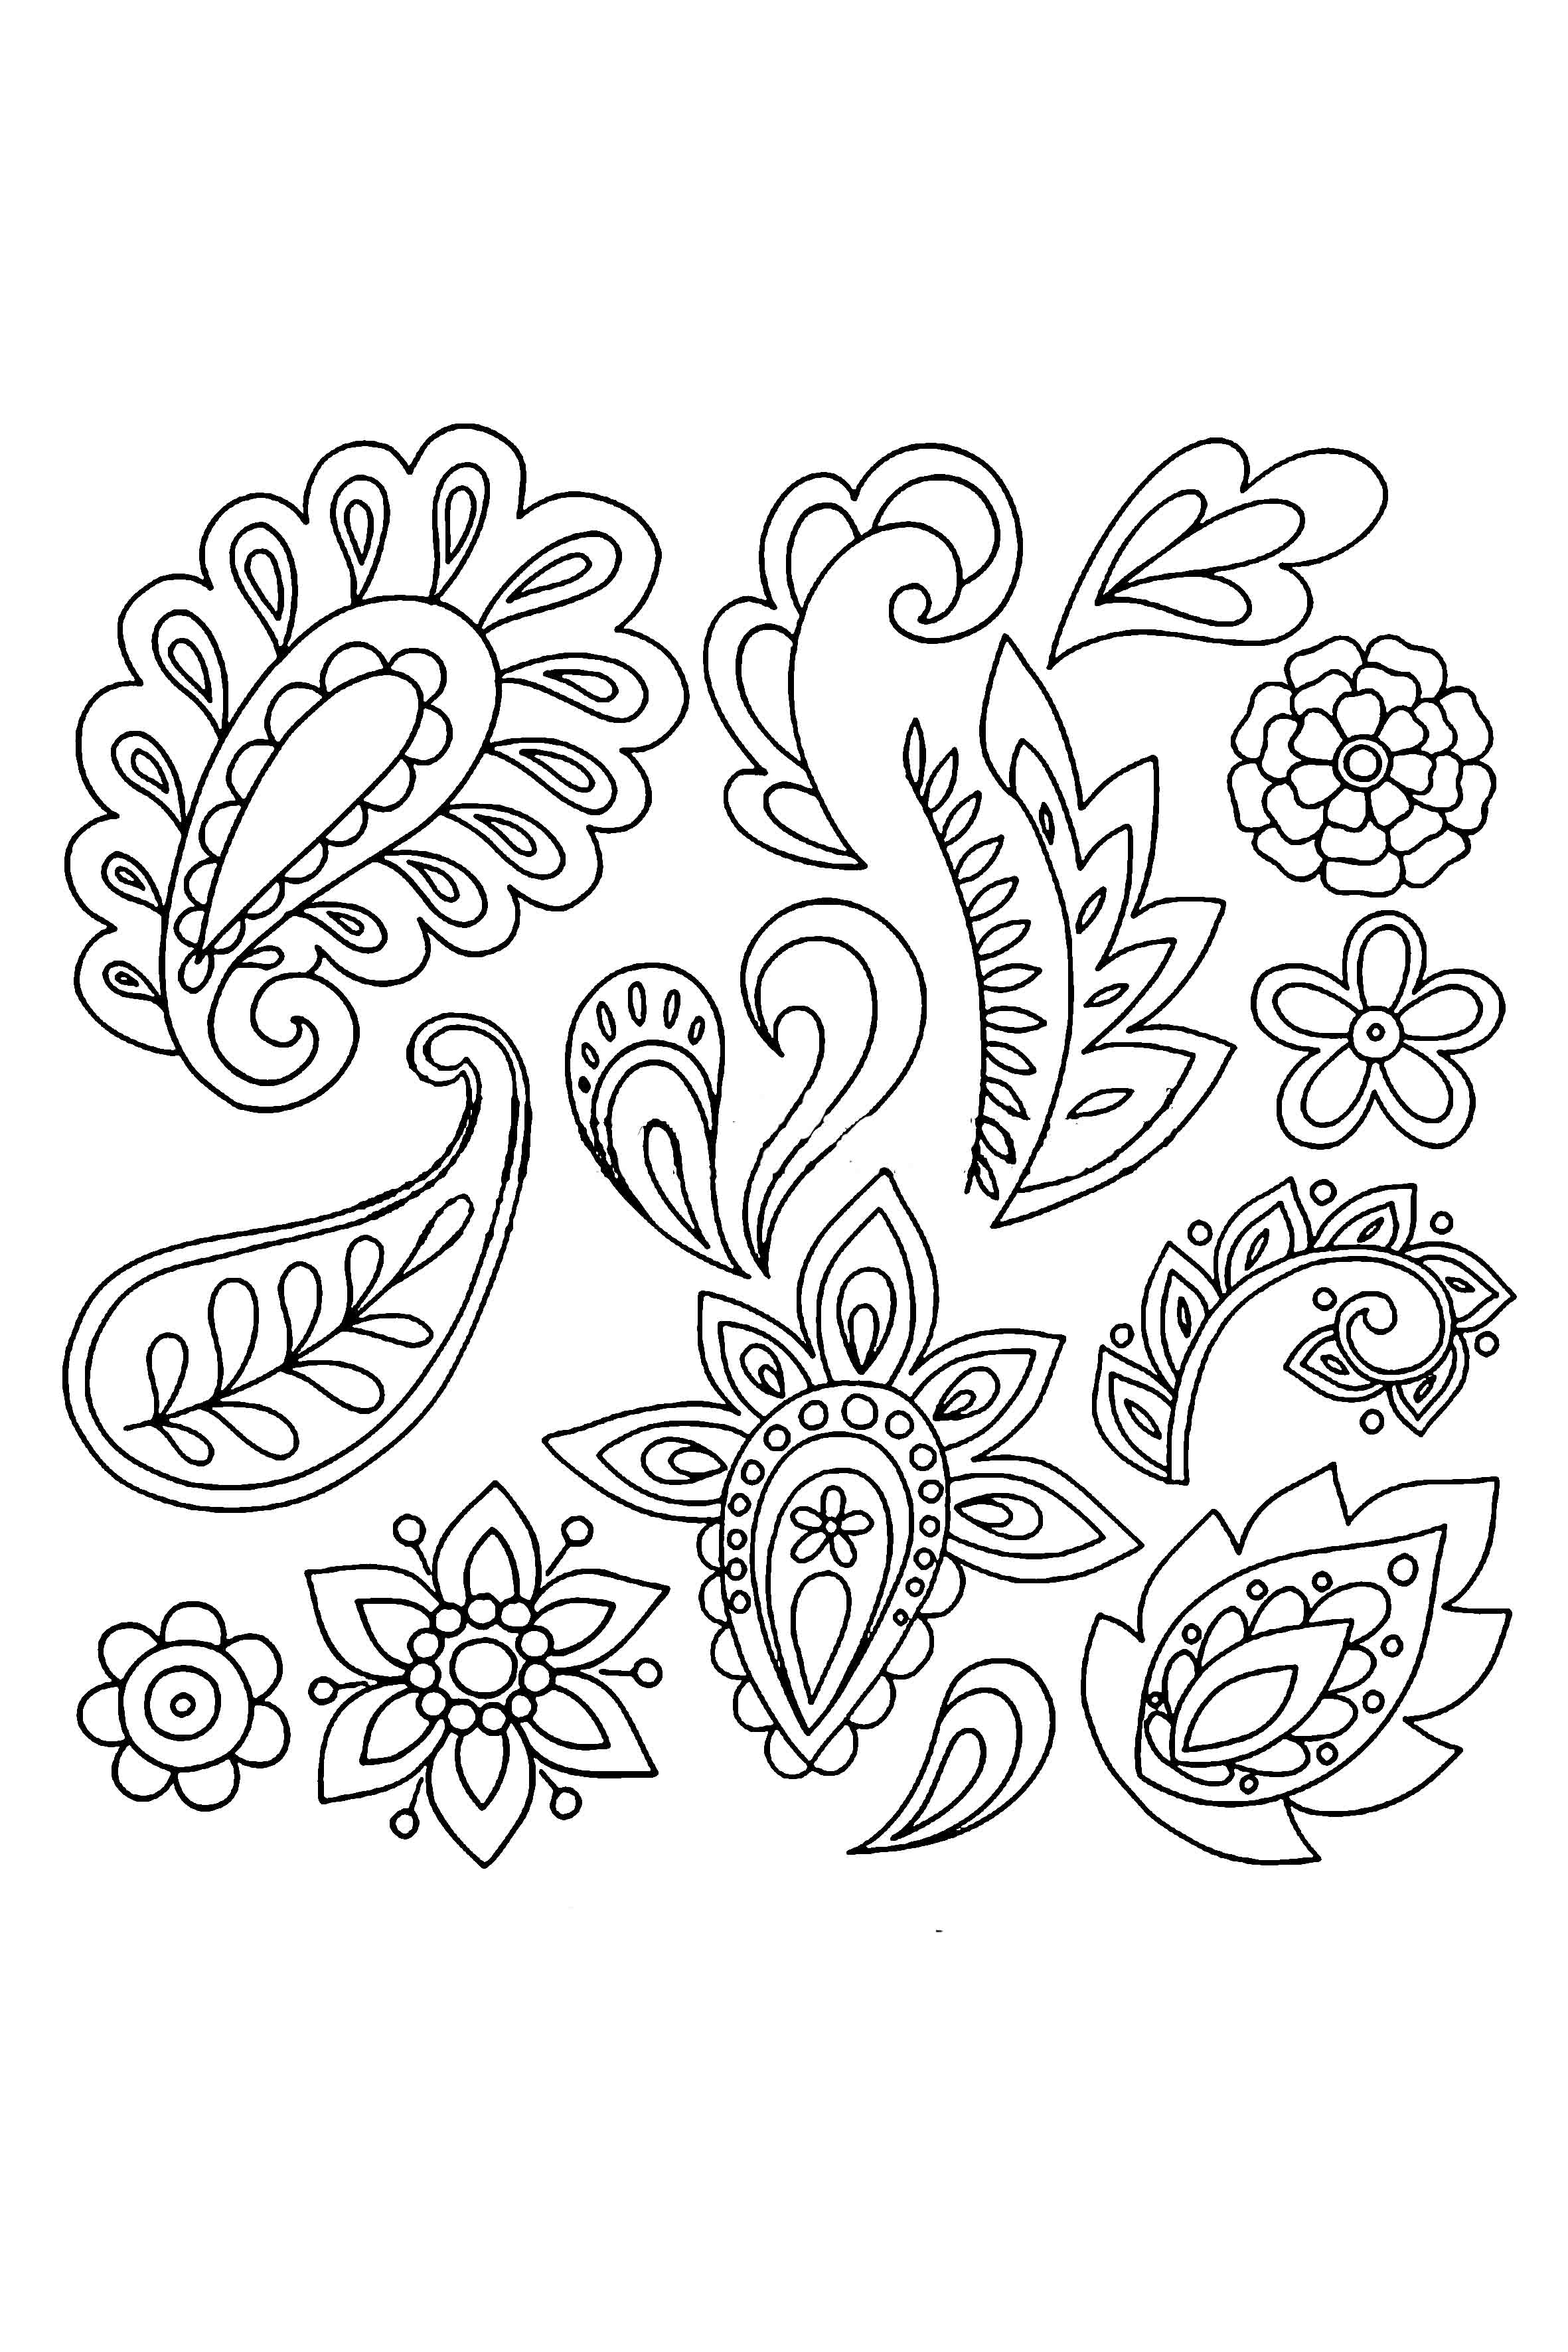 Paisley Design Drawing